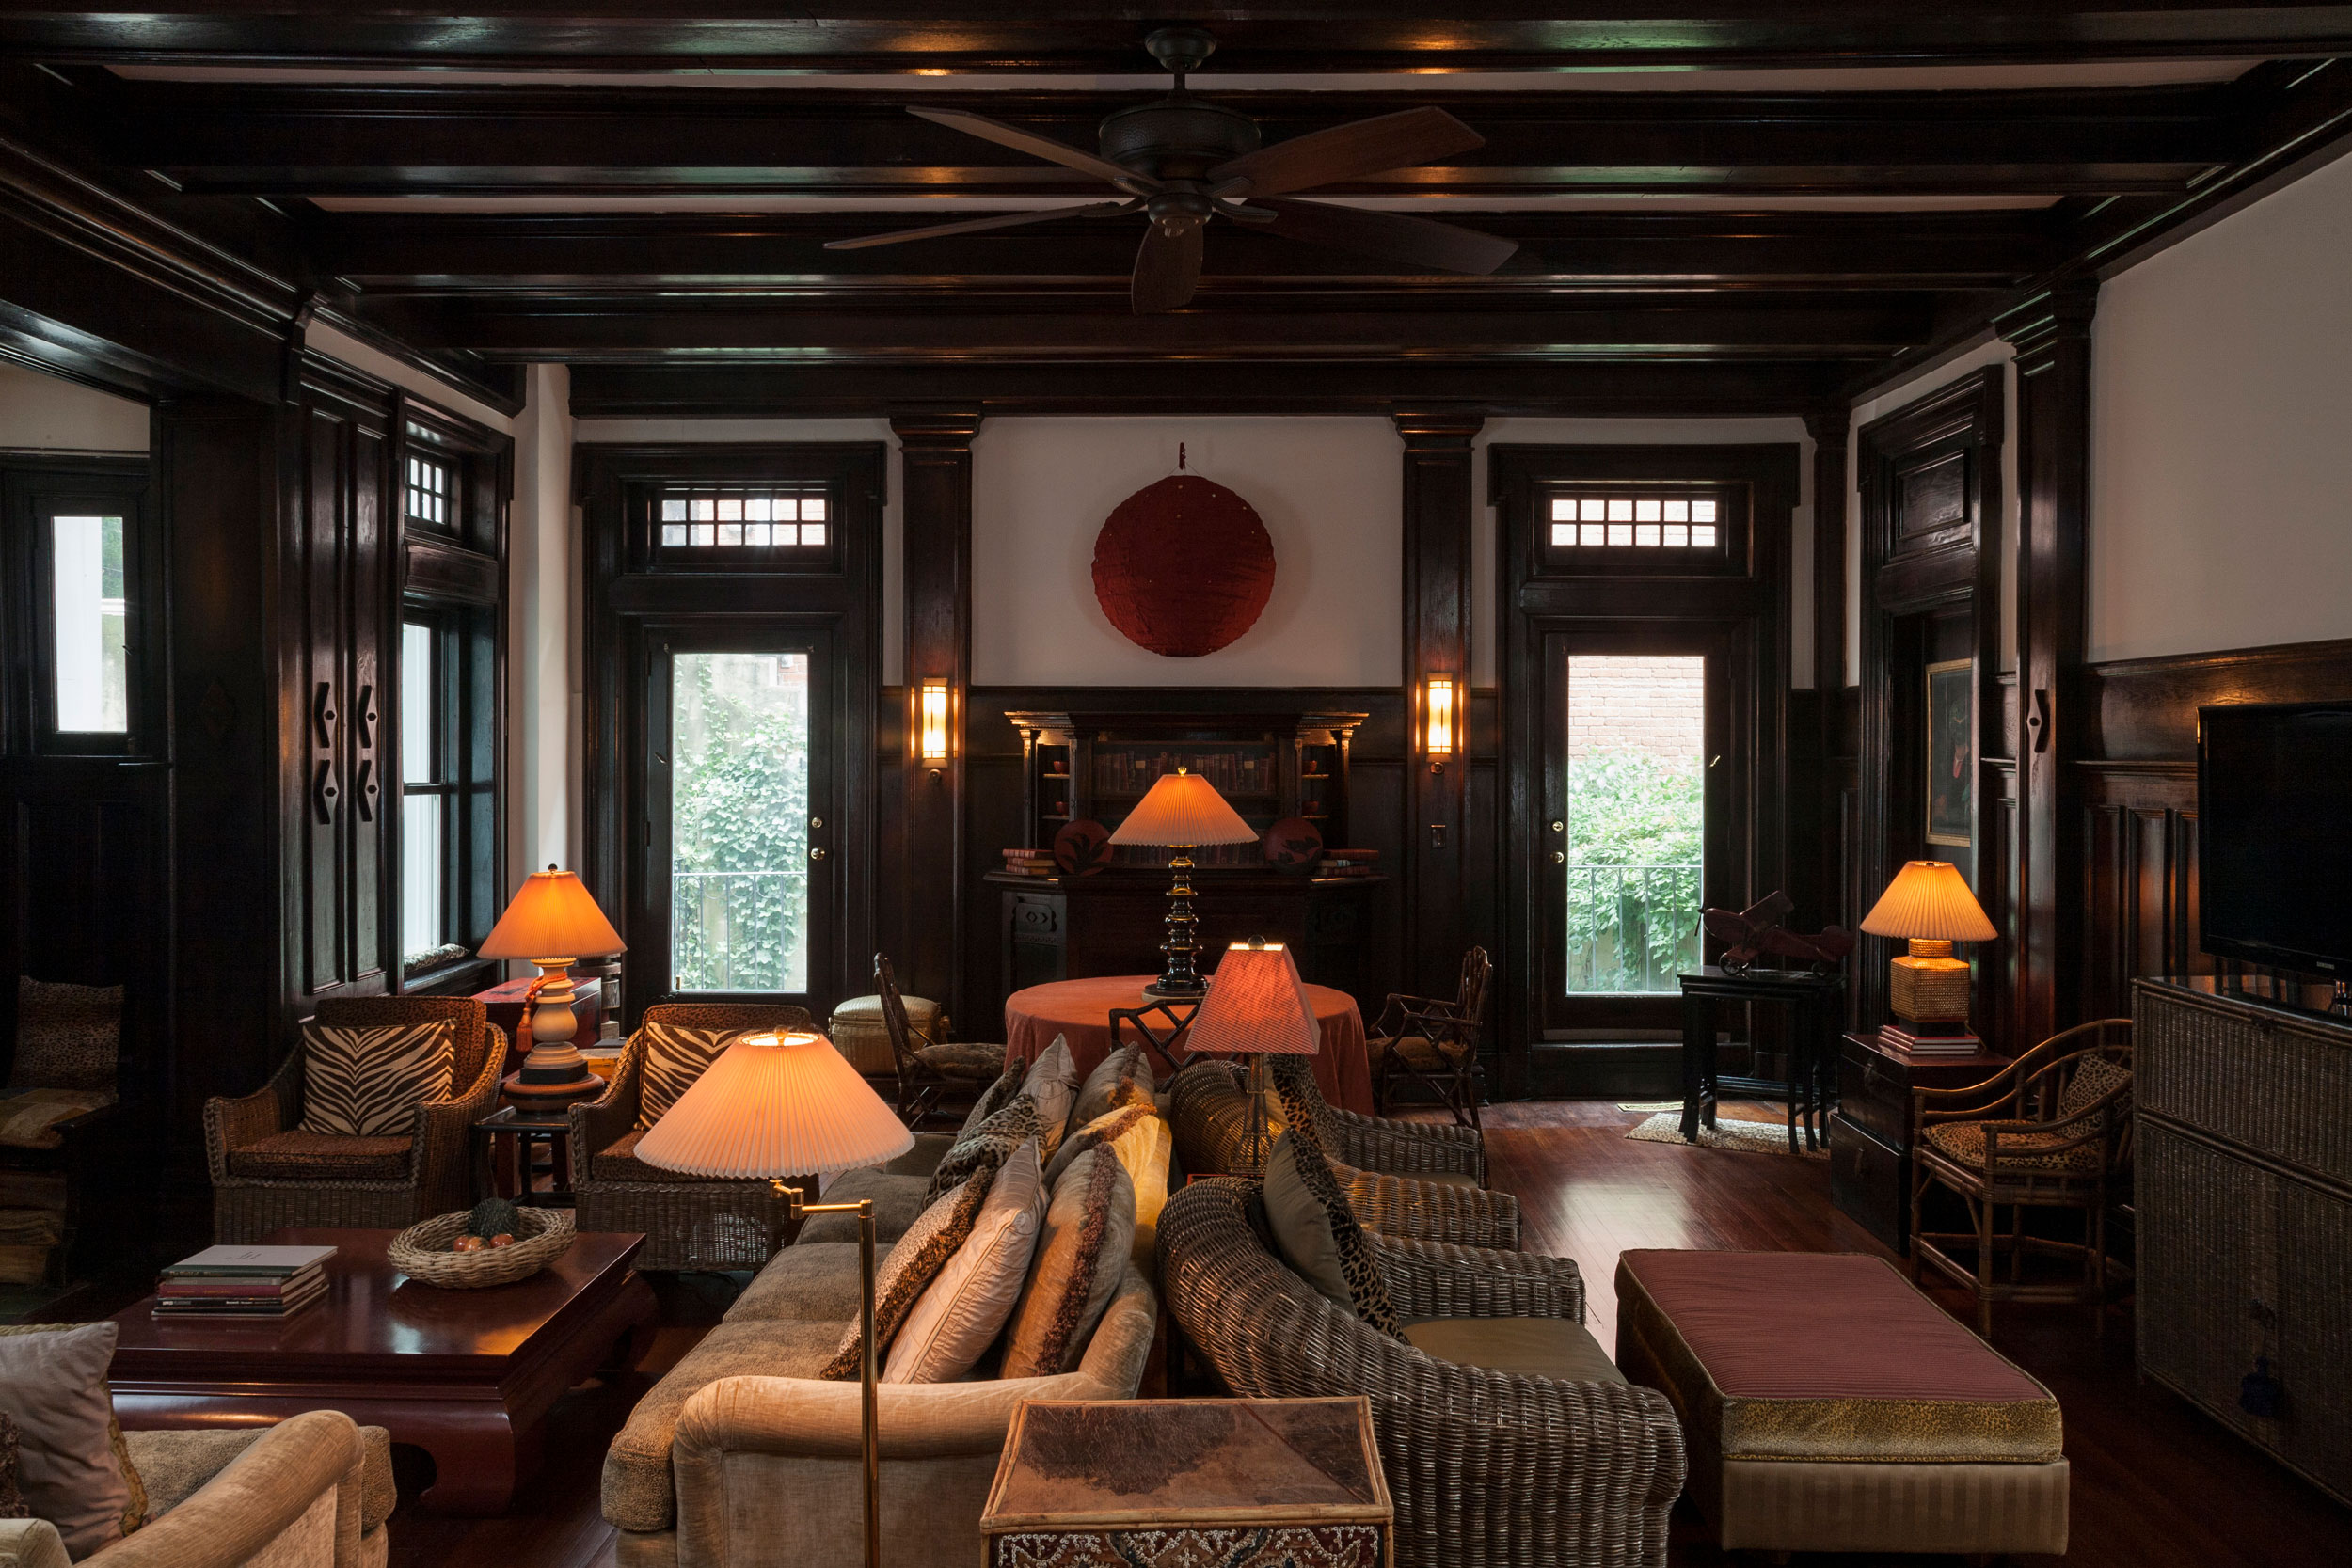 Audrey Bender's Living room in the former Qing Legation